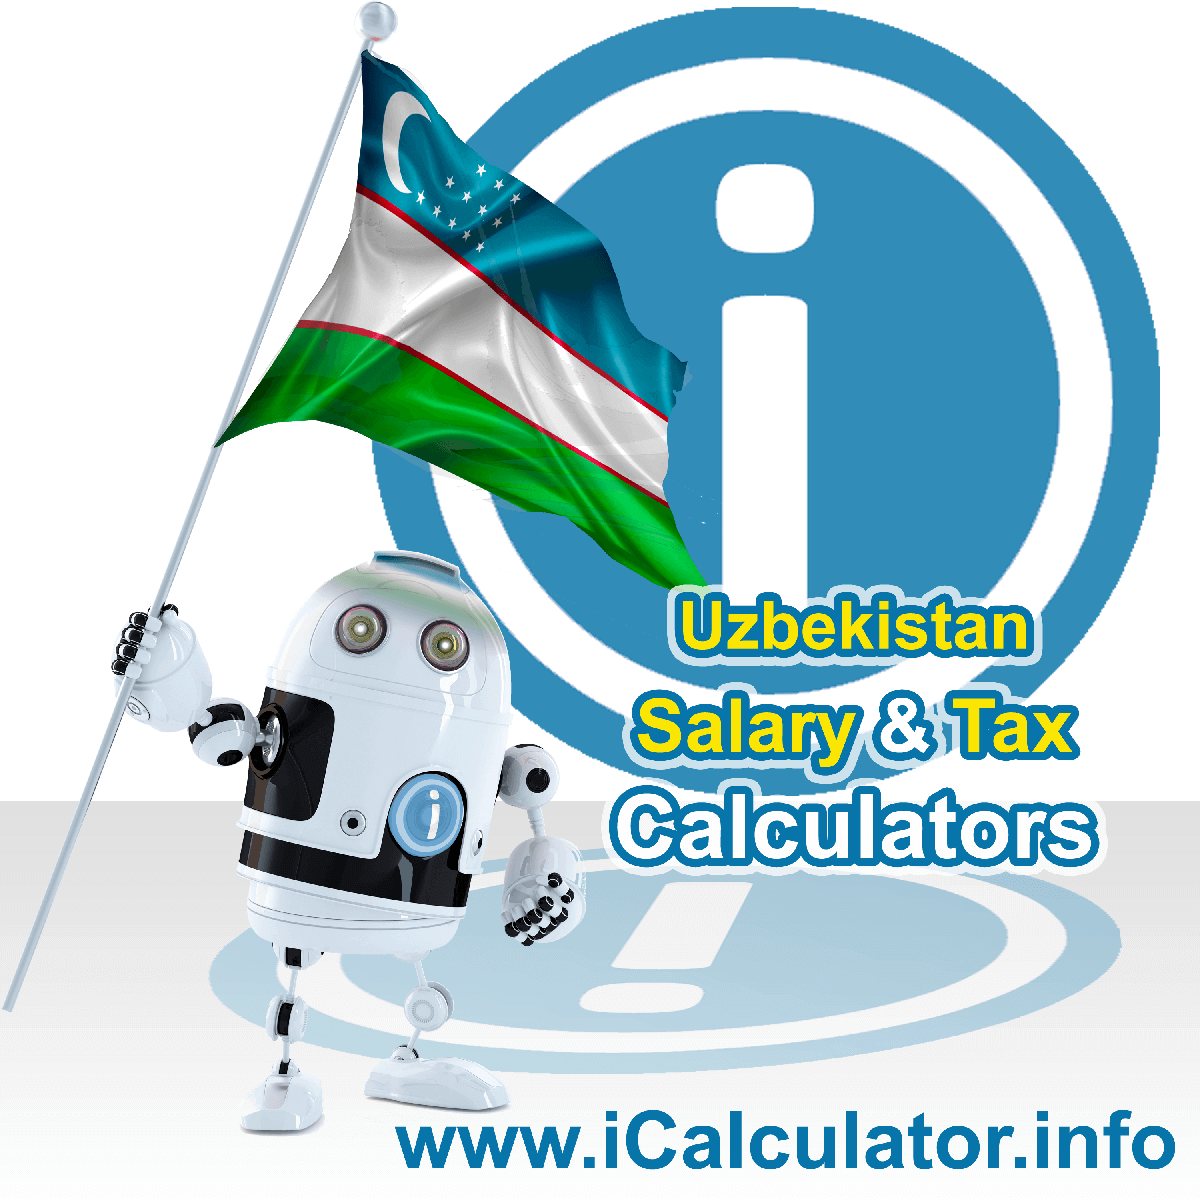 Uzbekistan Wage Calculator. This image shows the Uzbekistan flag and information relating to the tax formula for the Uzbekistan Tax Calculator